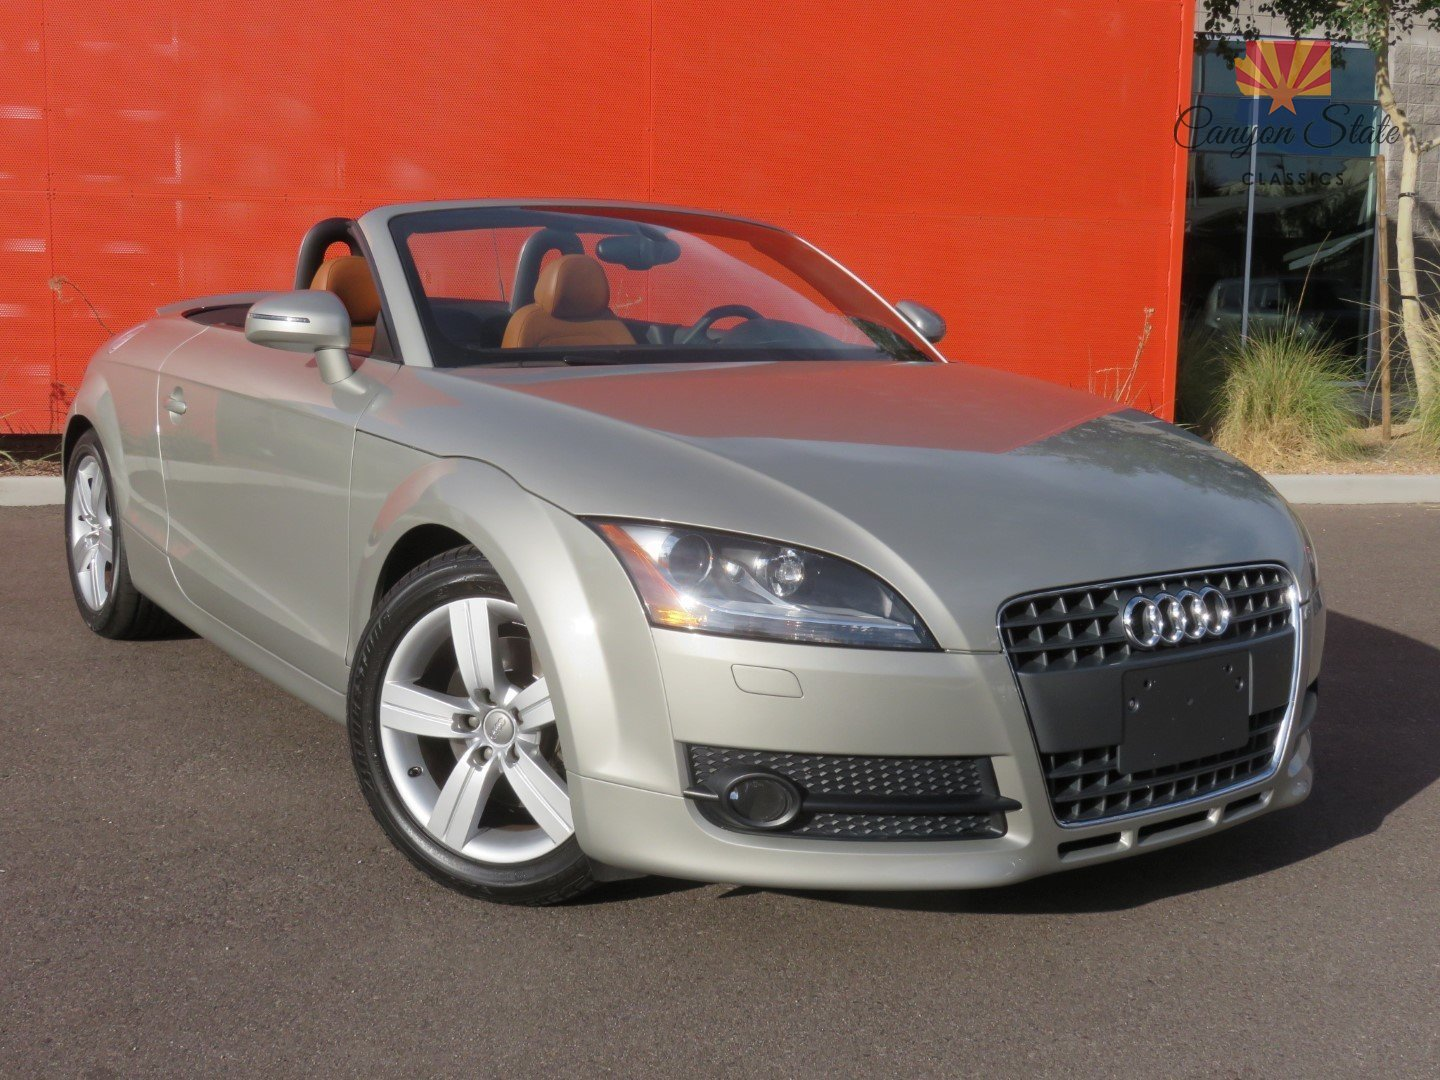 2008 audi tt 2dr roadster fwd s tronic premium plus for sale 73583 mcg. Black Bedroom Furniture Sets. Home Design Ideas